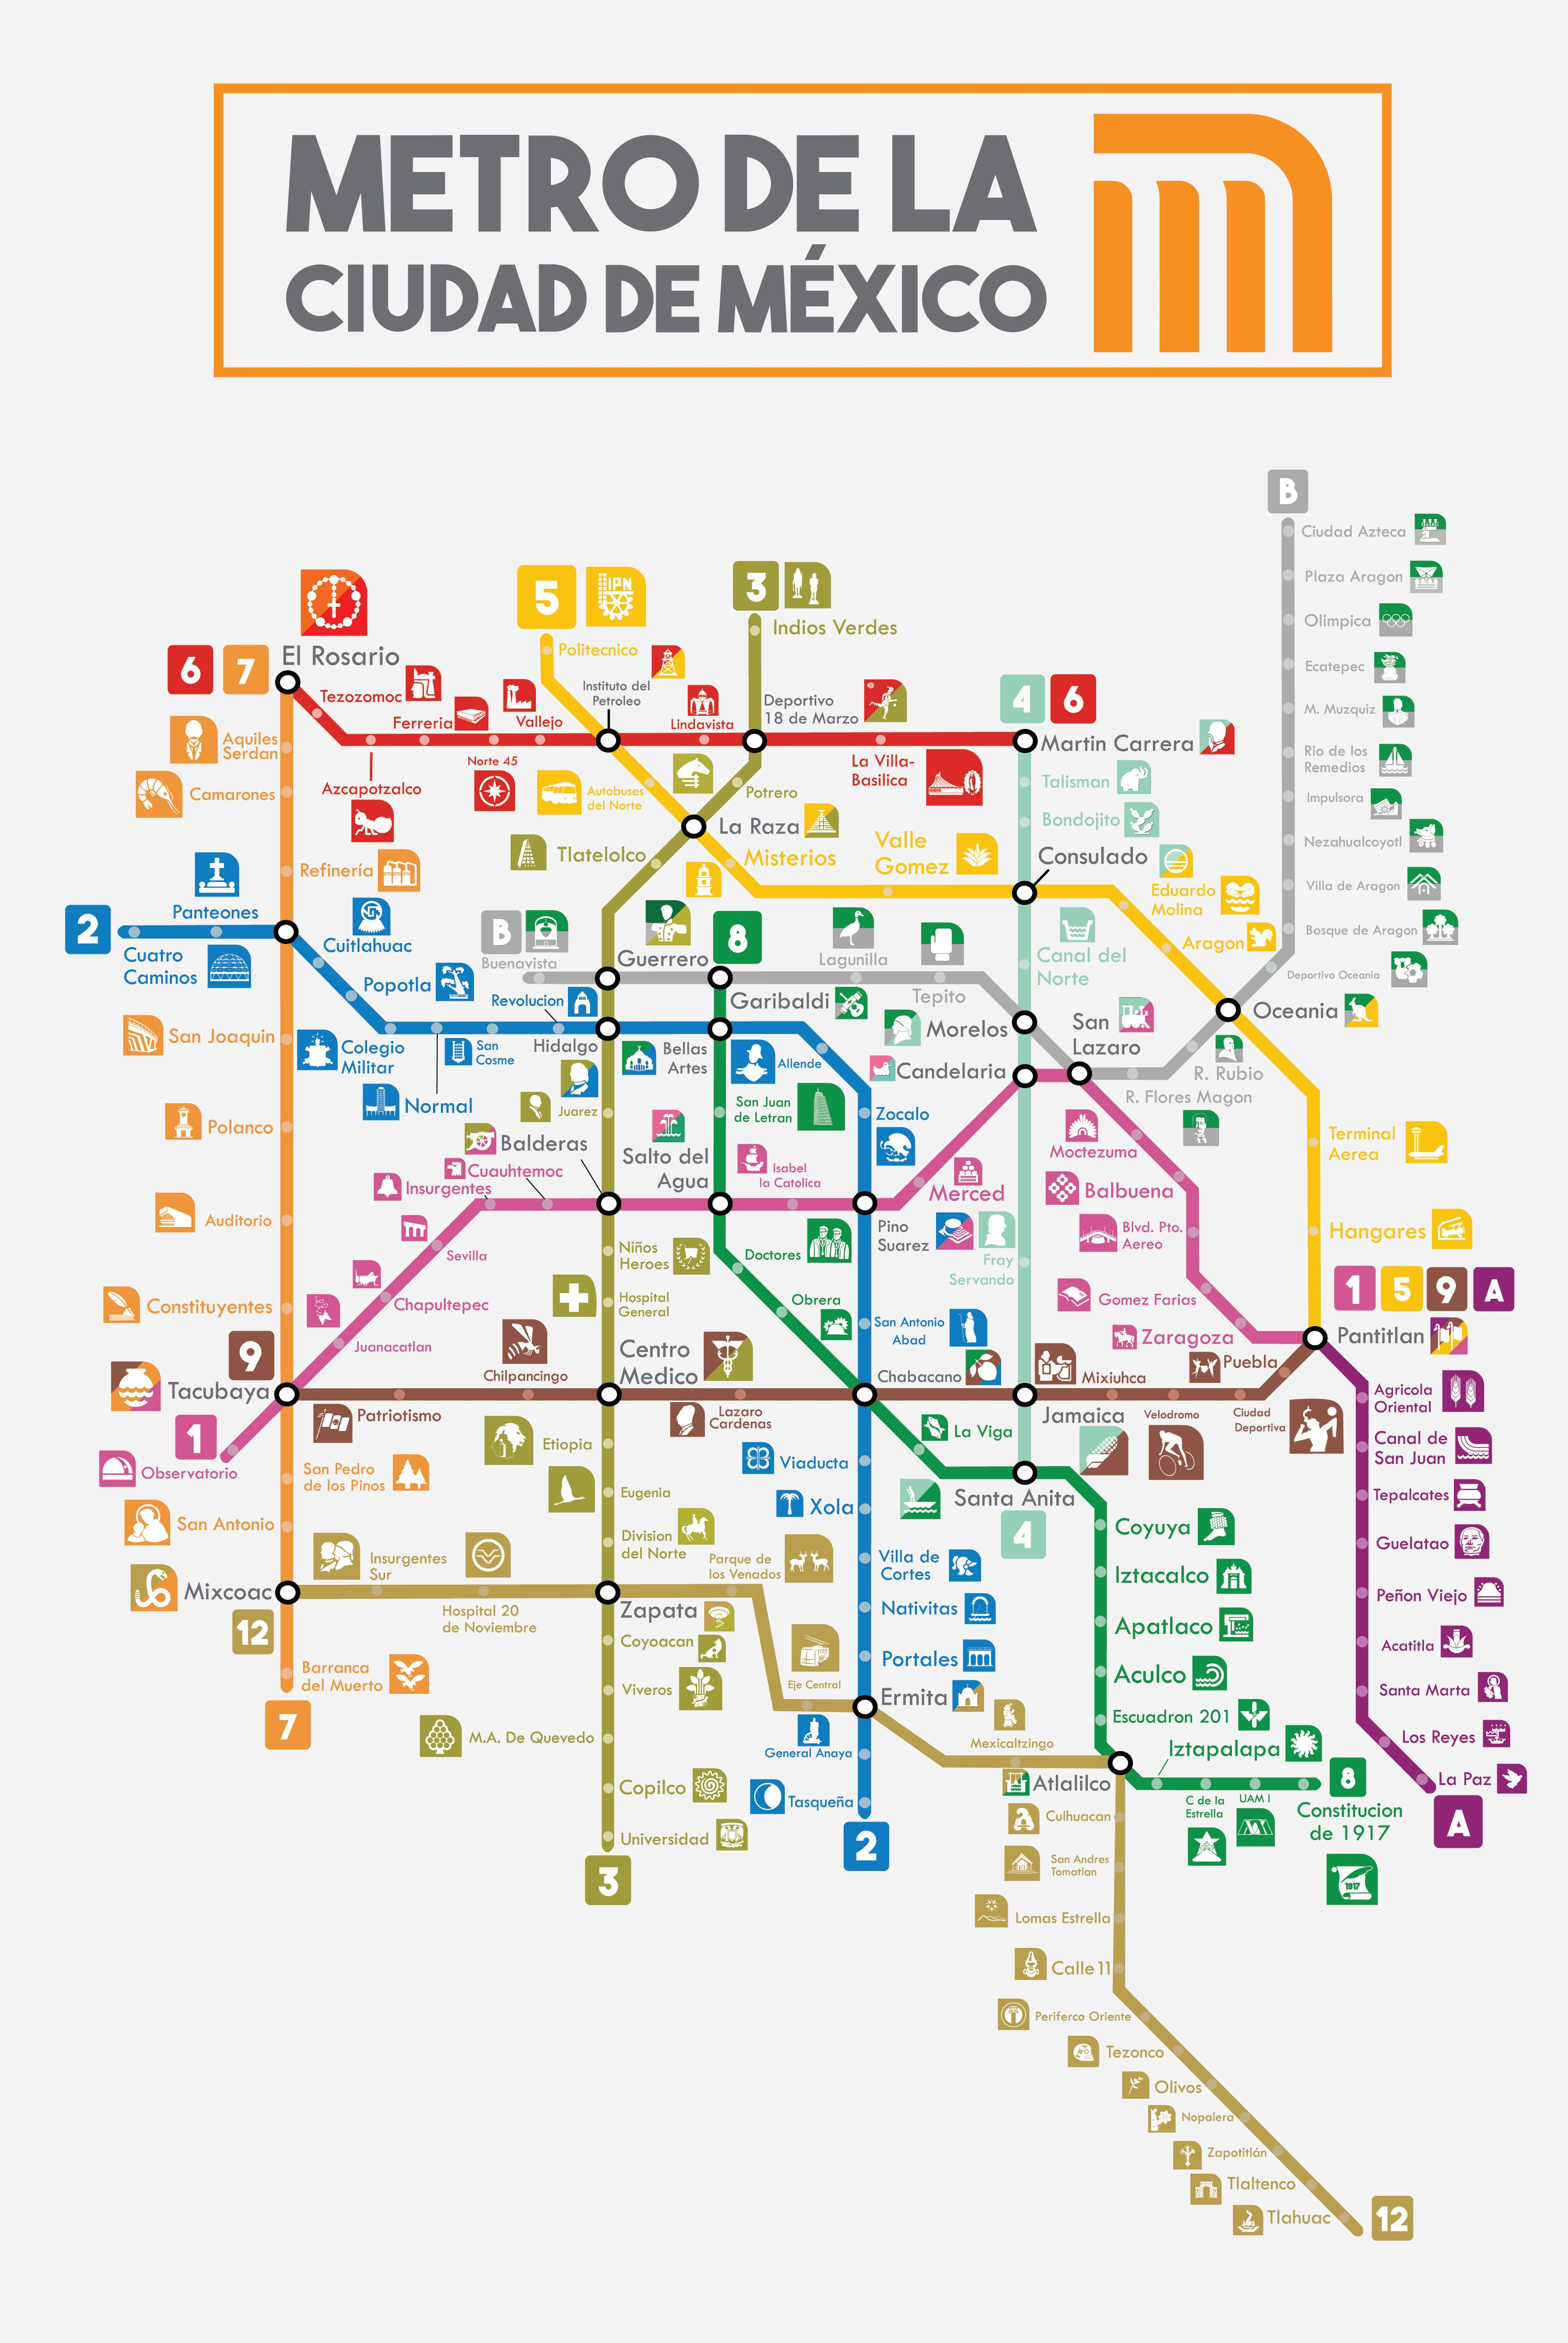 Subway Map Mexico City.Mexico City Subway Map Buttered Kat In 2020 Subway Map Mexico City Map Mexico City